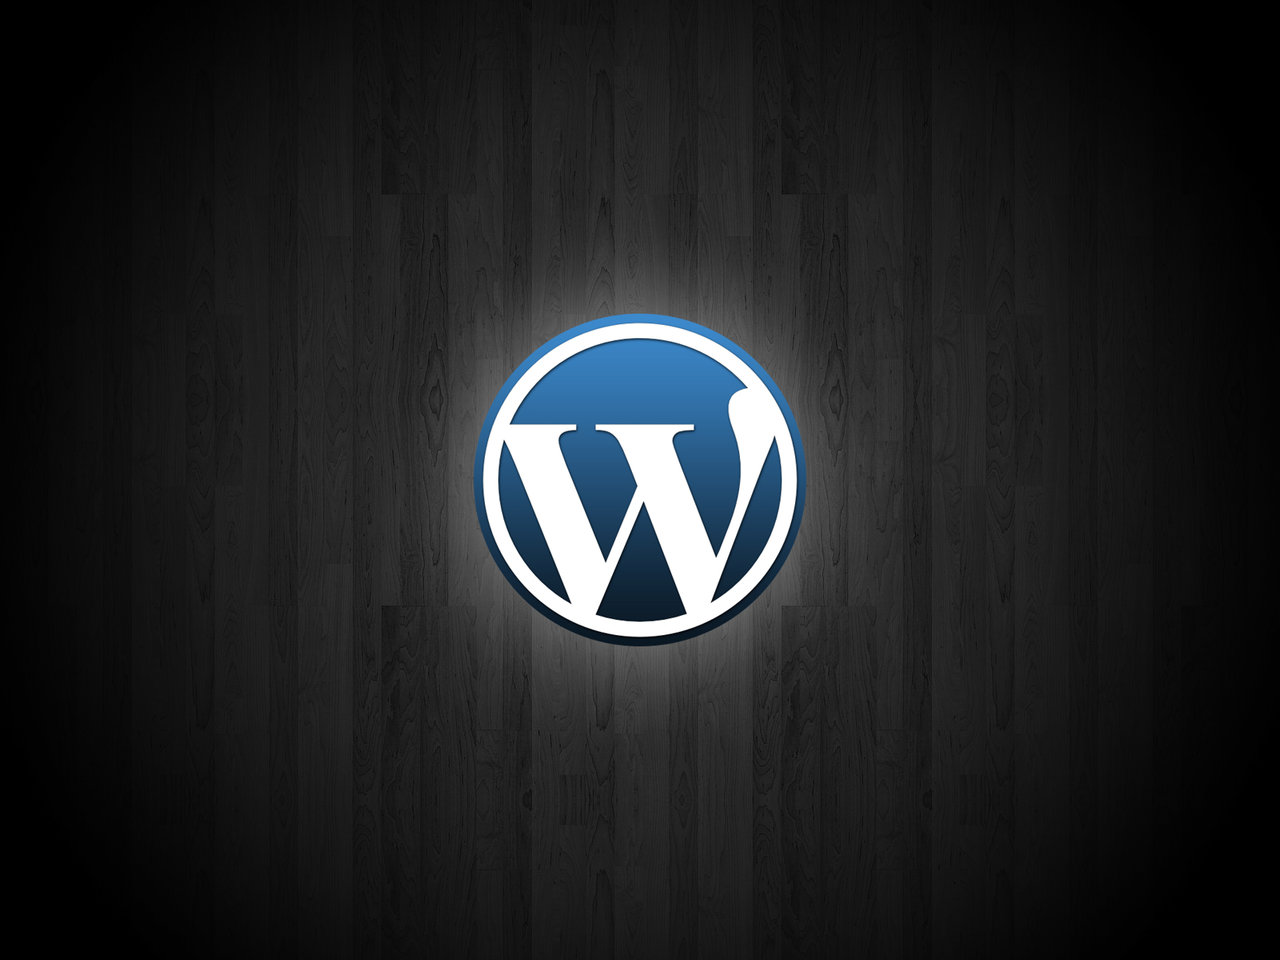 Curso de WordPress de A a Z